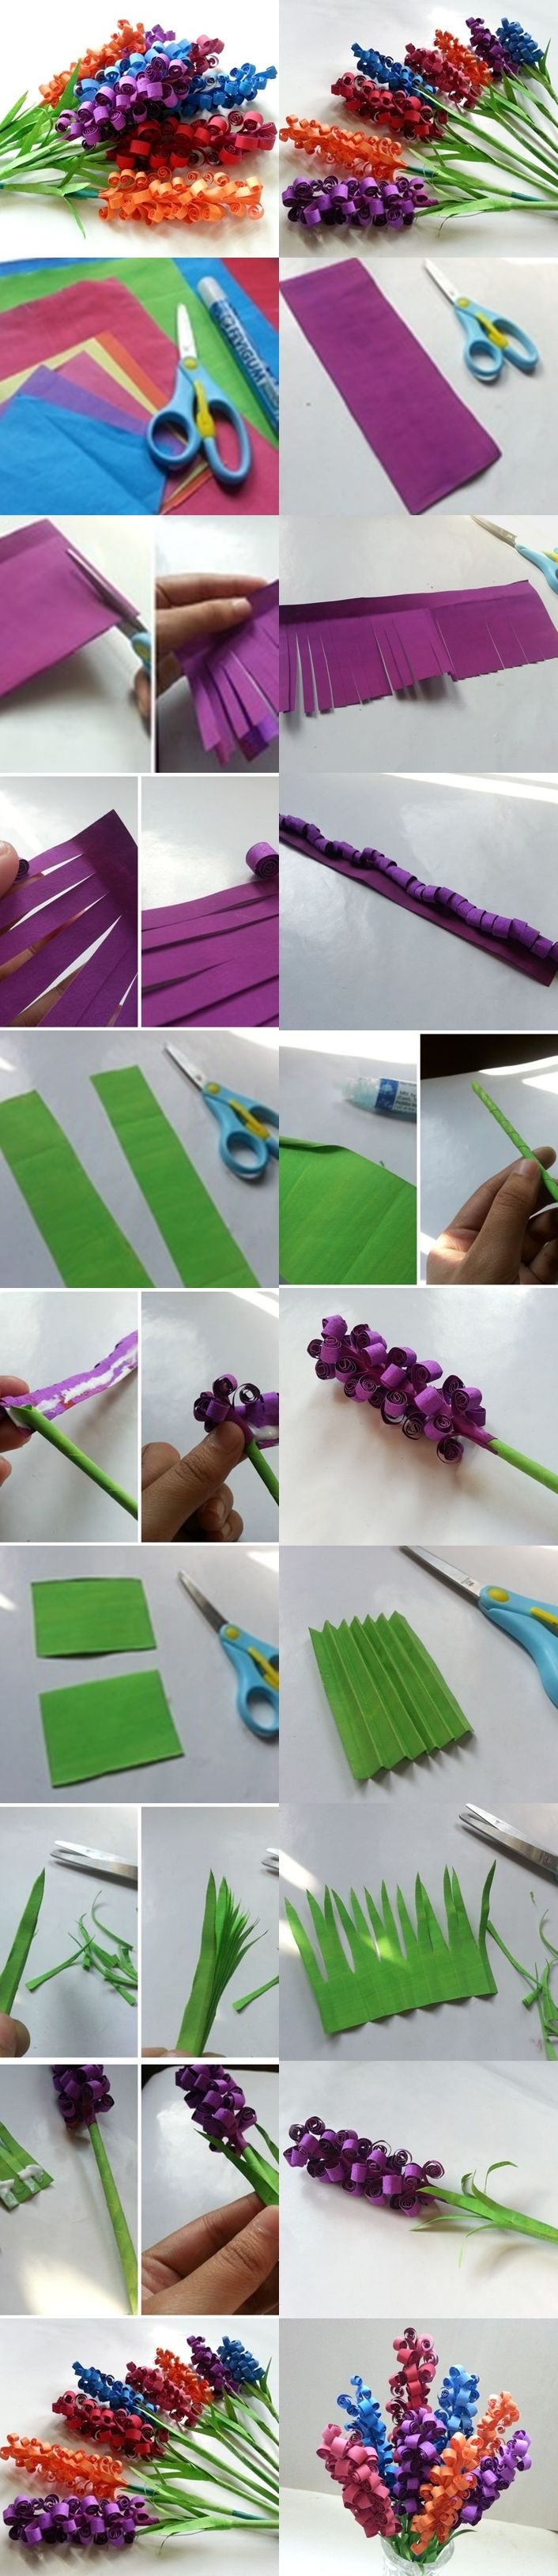 DIY Swirly Paper Flowers look really cute